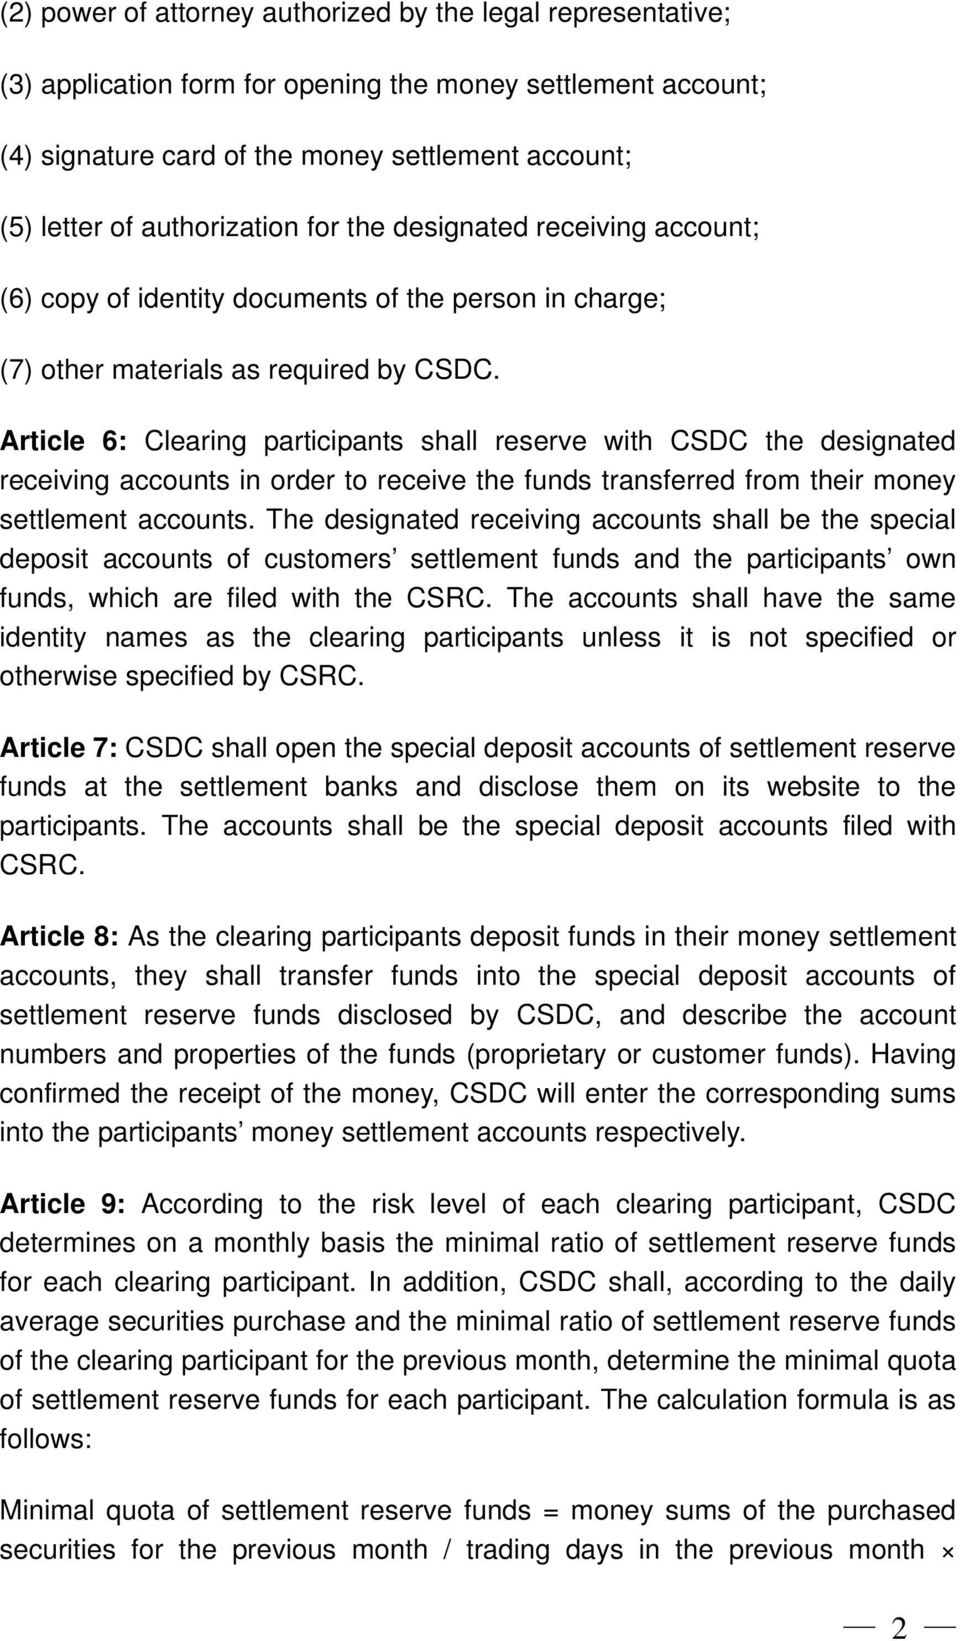 Article 6: Clearing participants shall reserve with CSDC the designated receiving accounts in order to receive the funds transferred from their money settlement accounts.